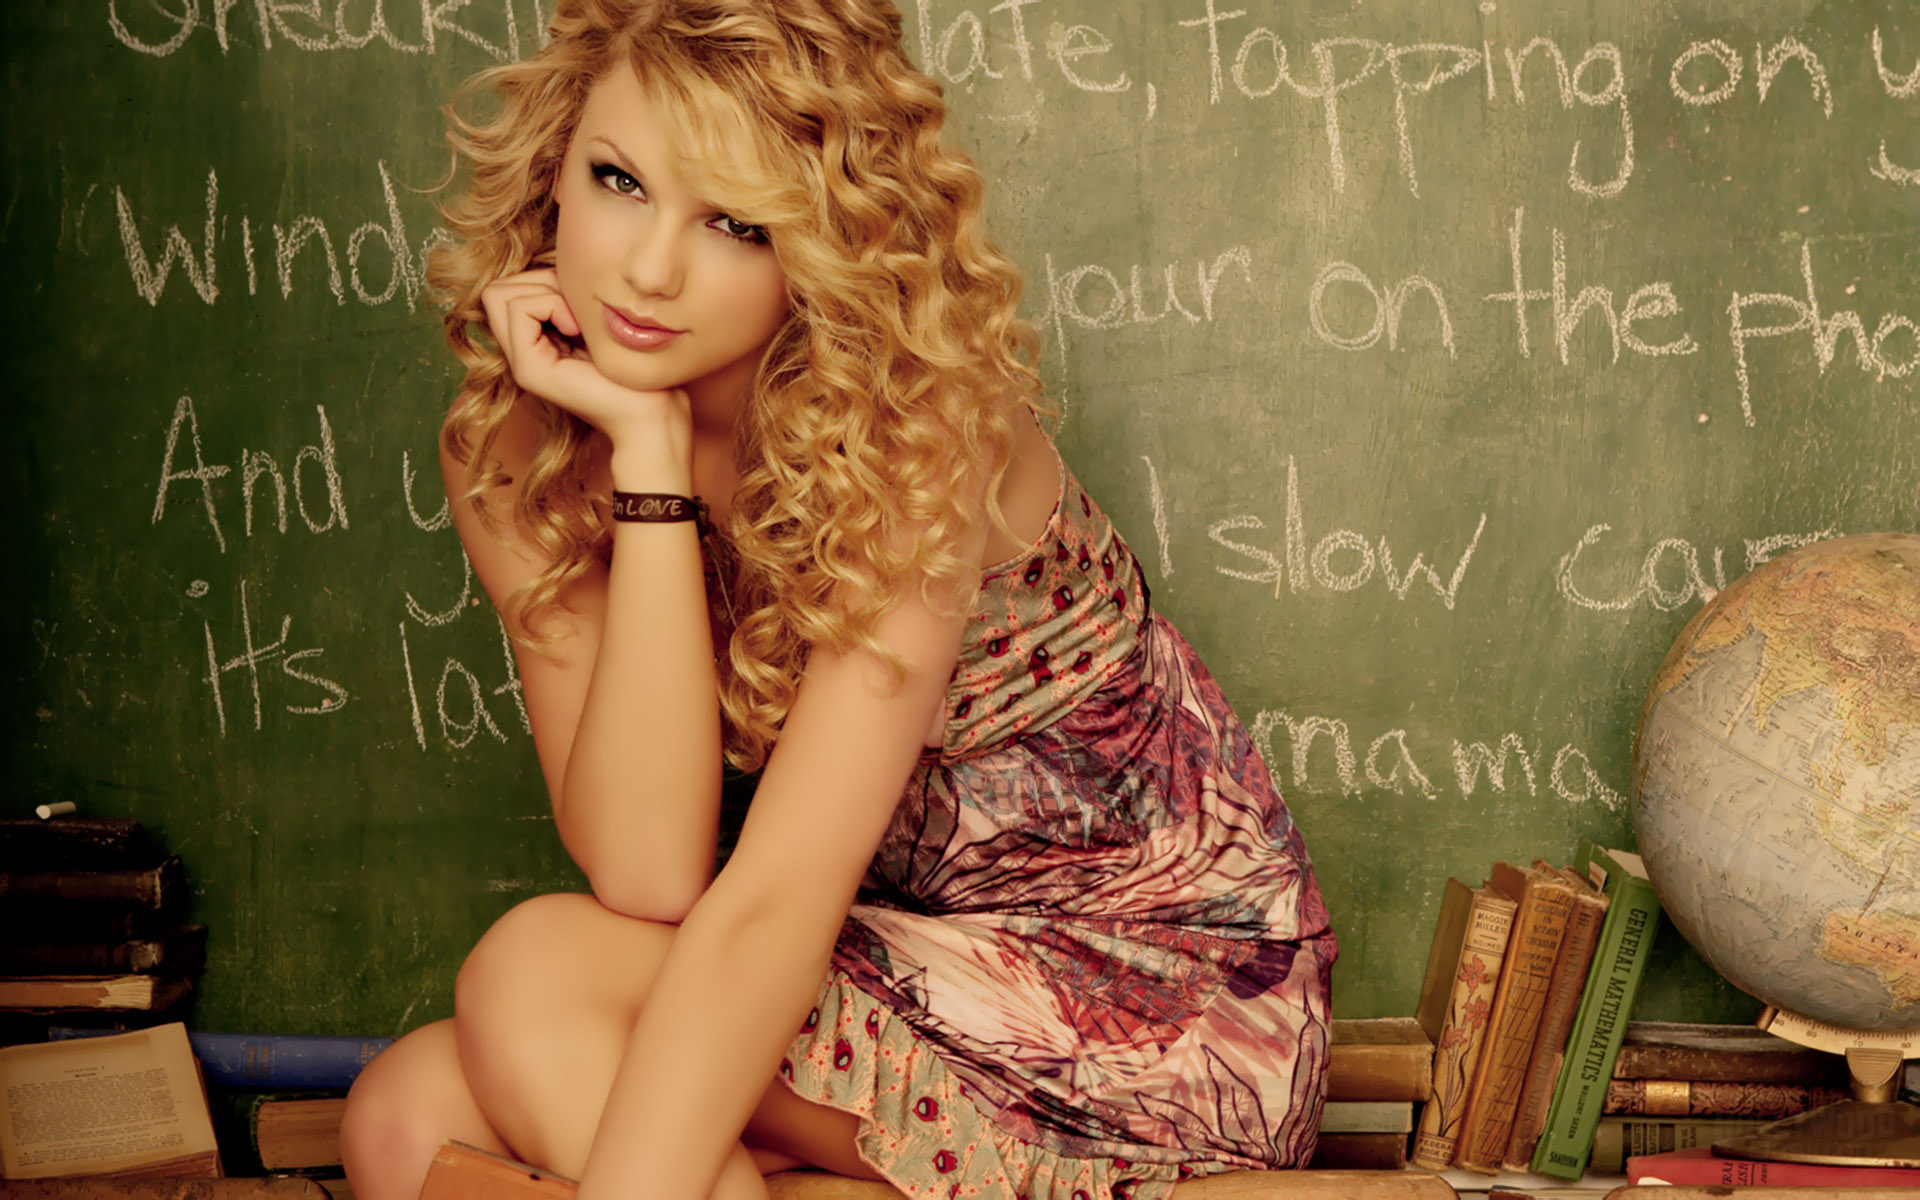 Taylor swift feet wallpapers hd wallpapers preview this wallpaper download this wallpaper voltagebd Images